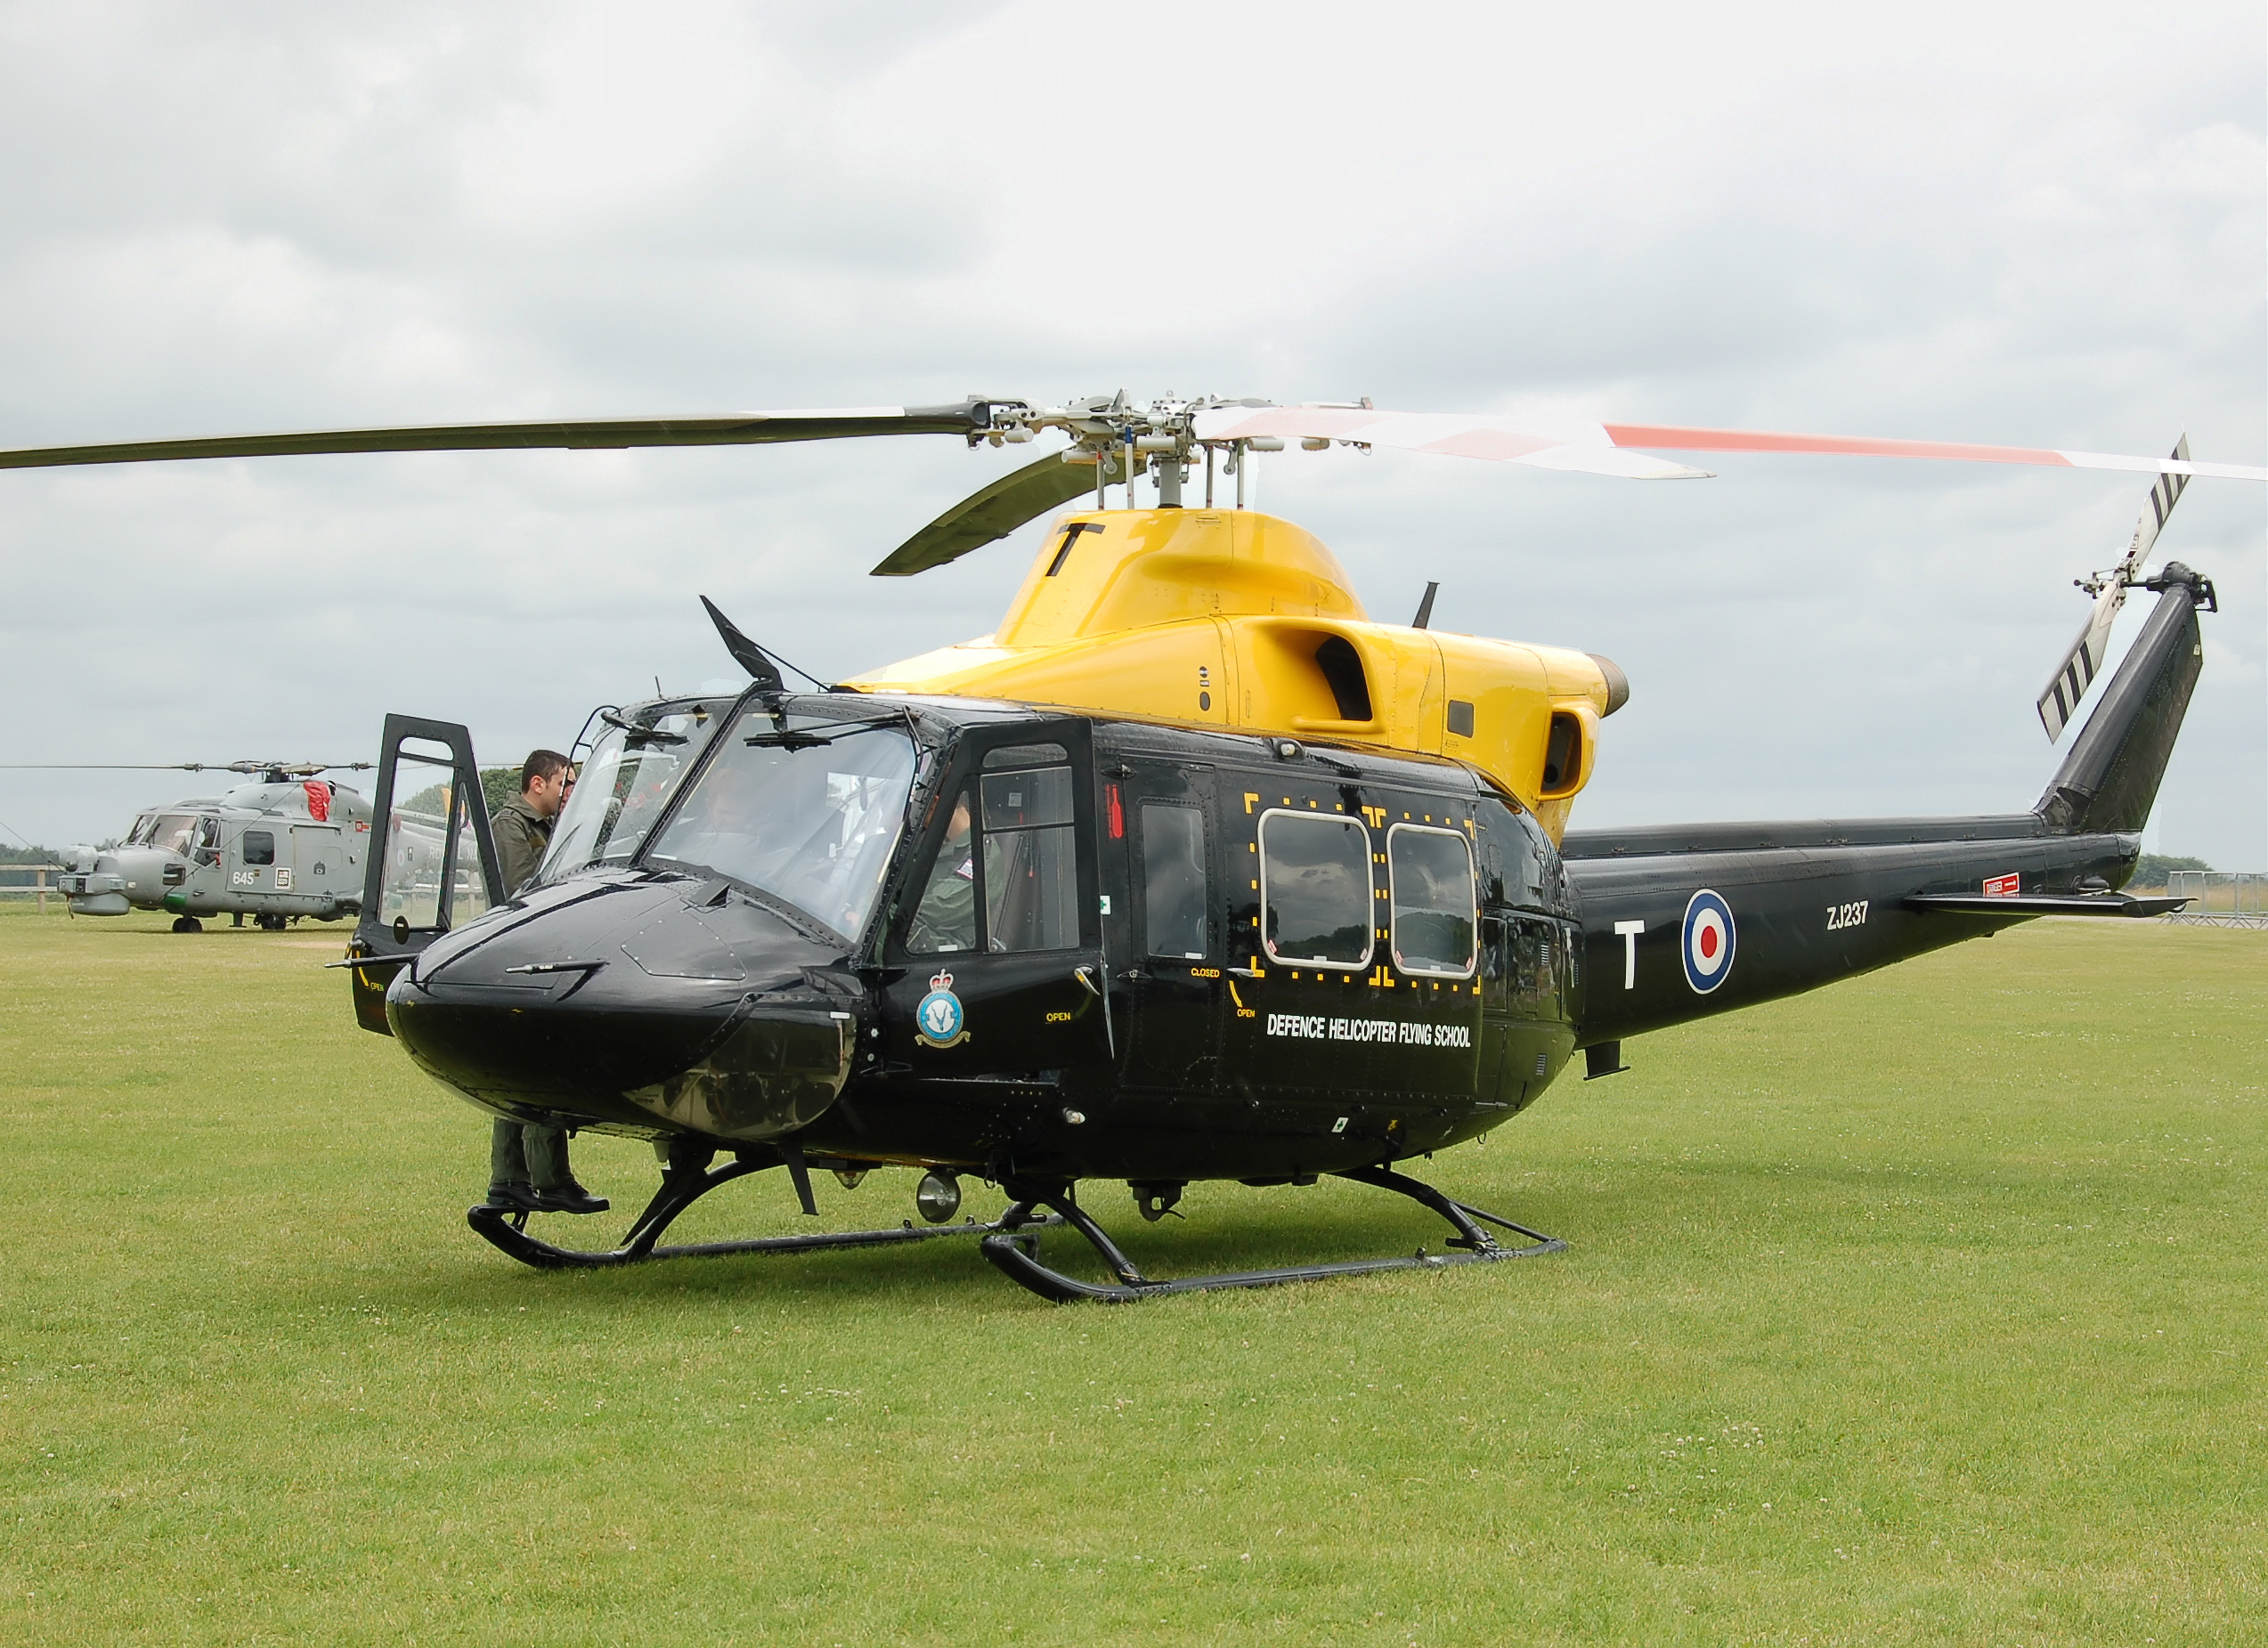 File:Dhfs bell 412ep griffin ht1 zj237 arp ...